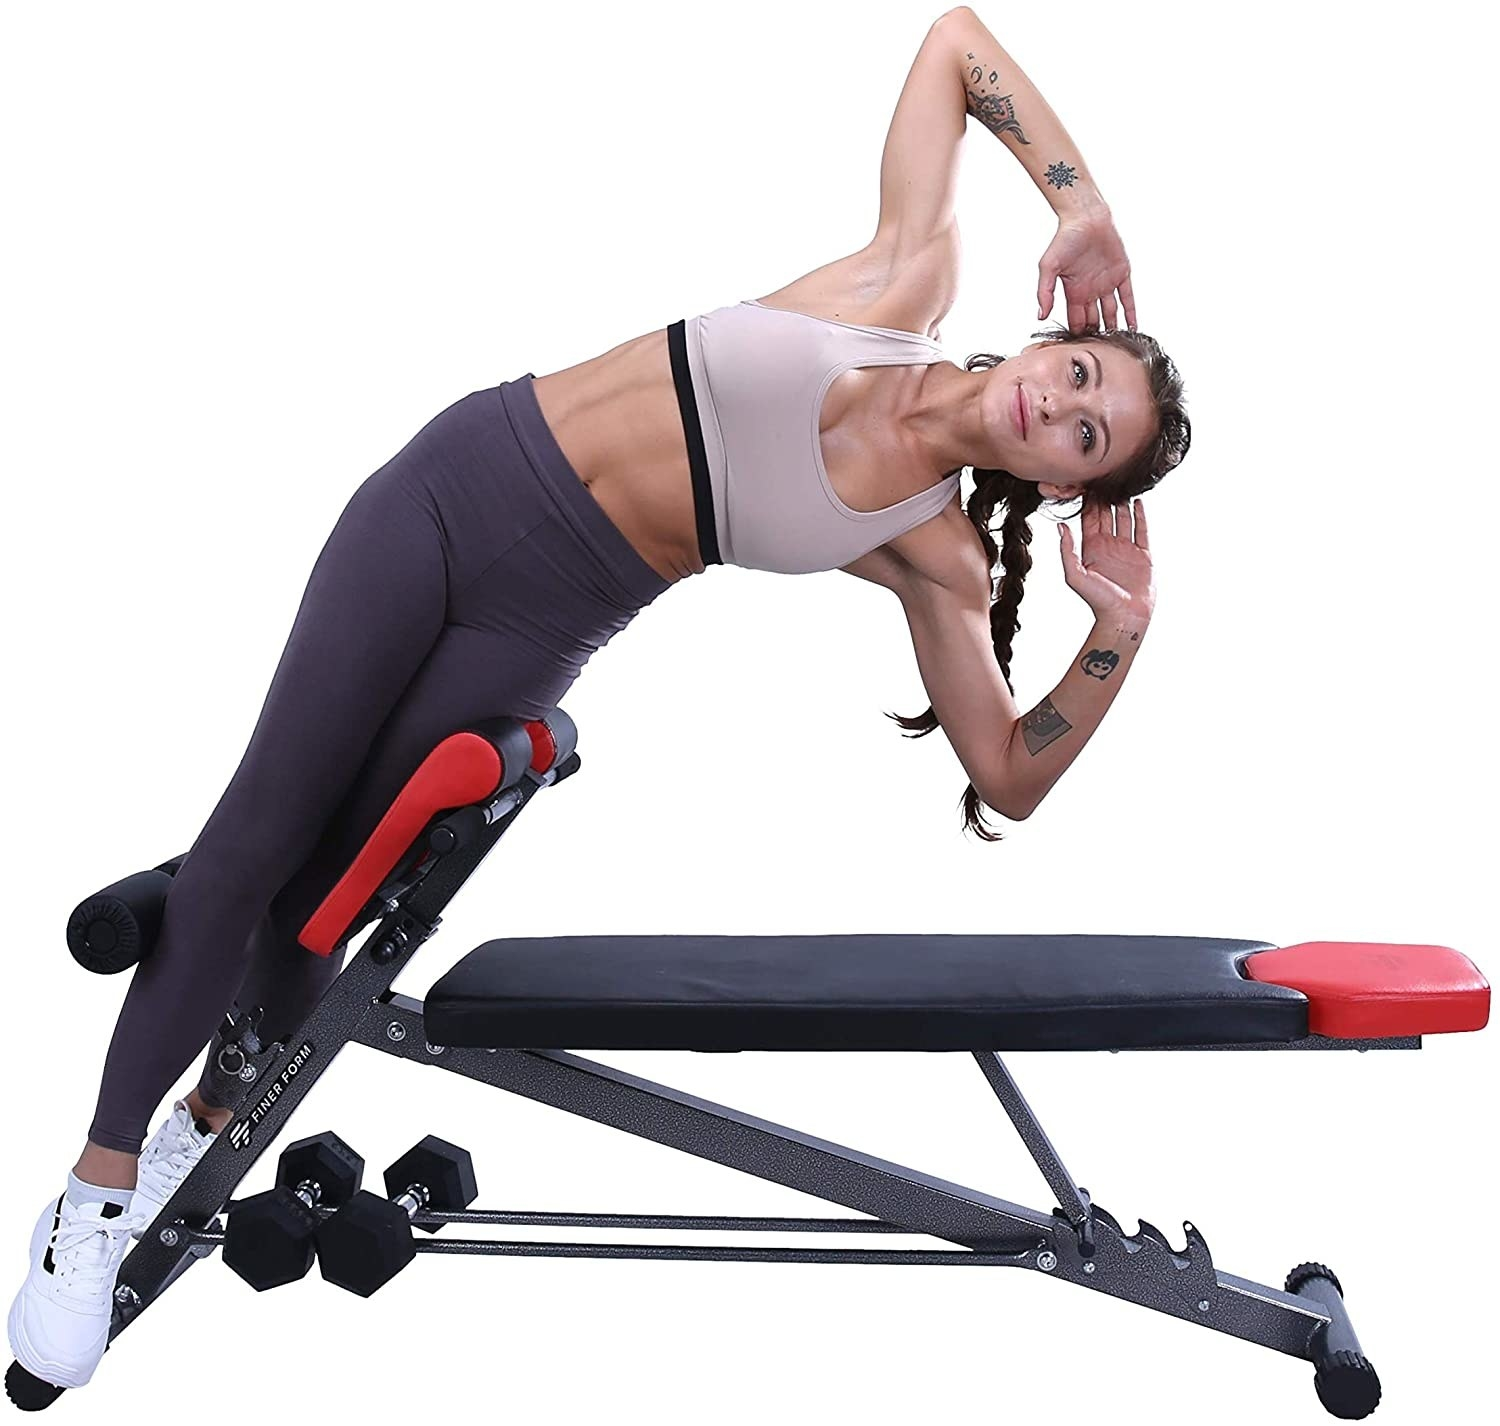 A model using the black and red bench